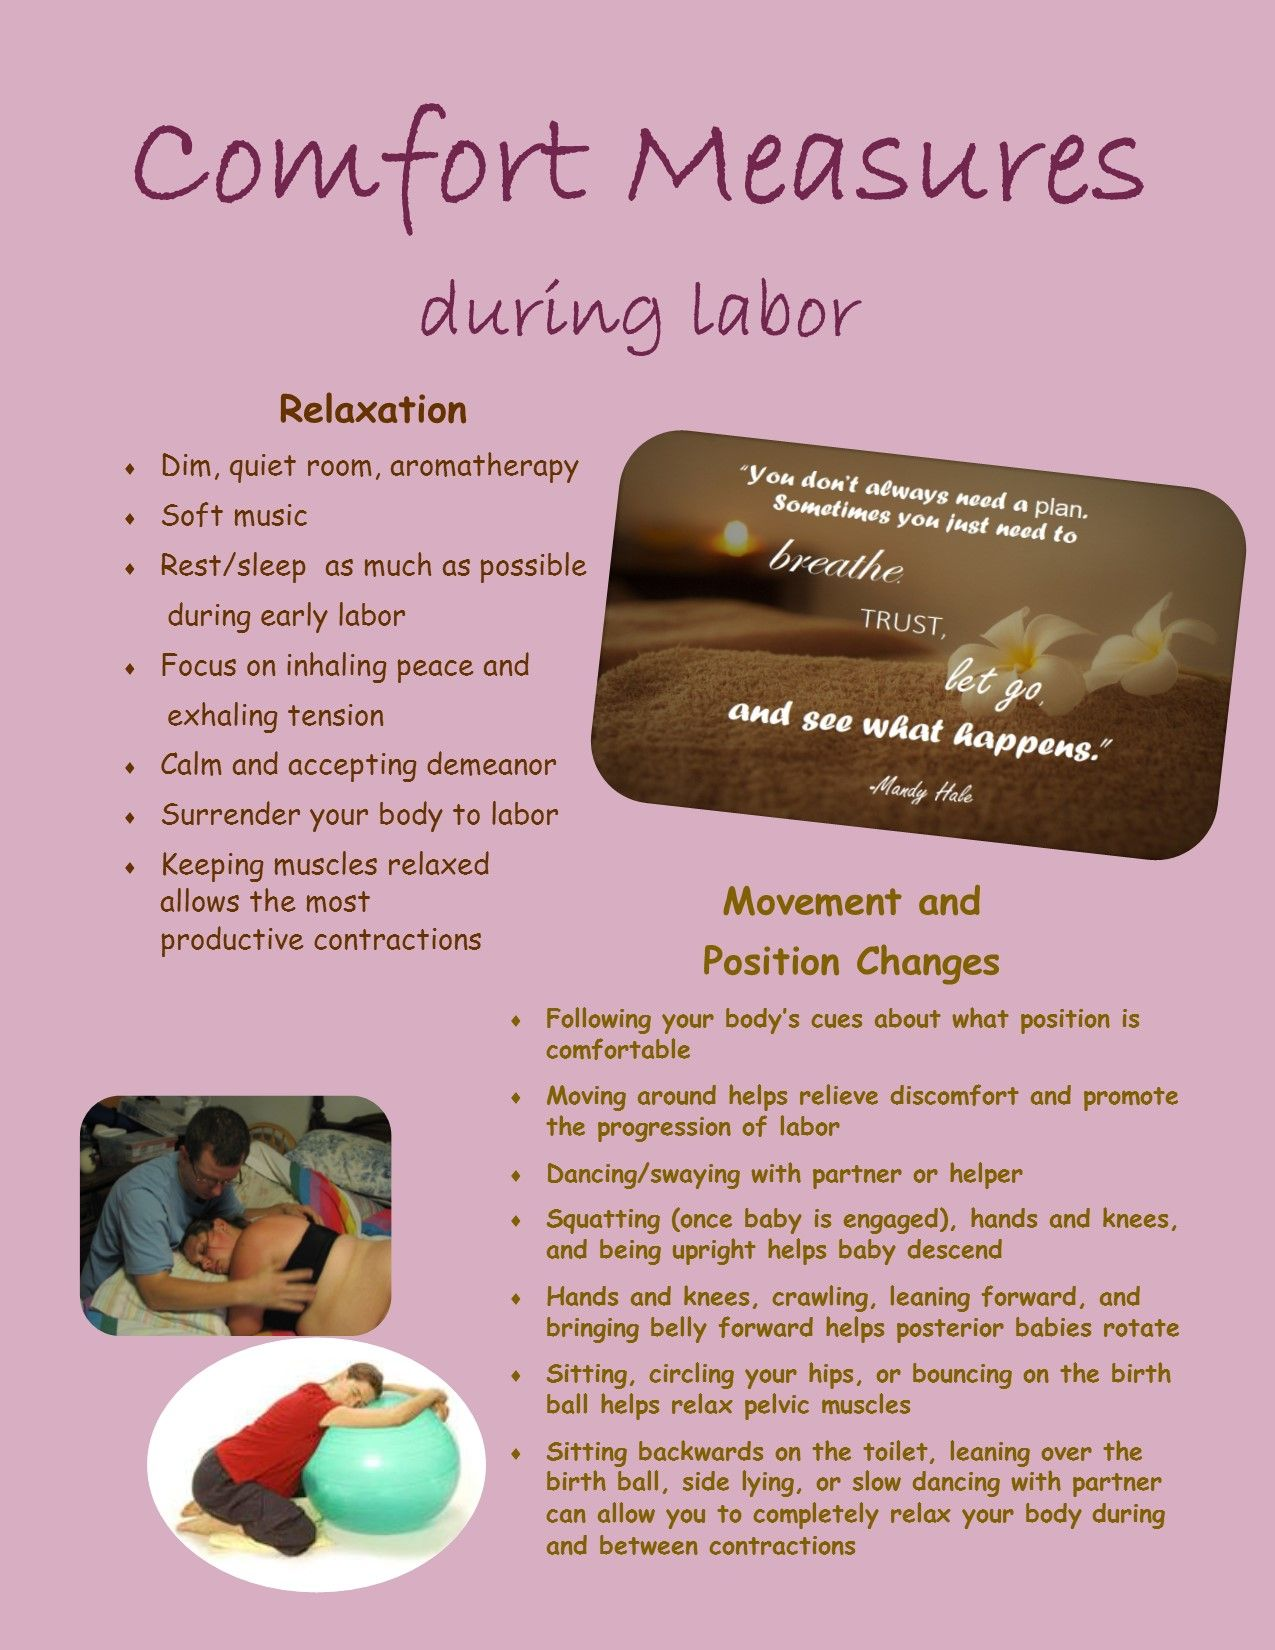 Comfort Measures during labor page 1 Midwife assistant